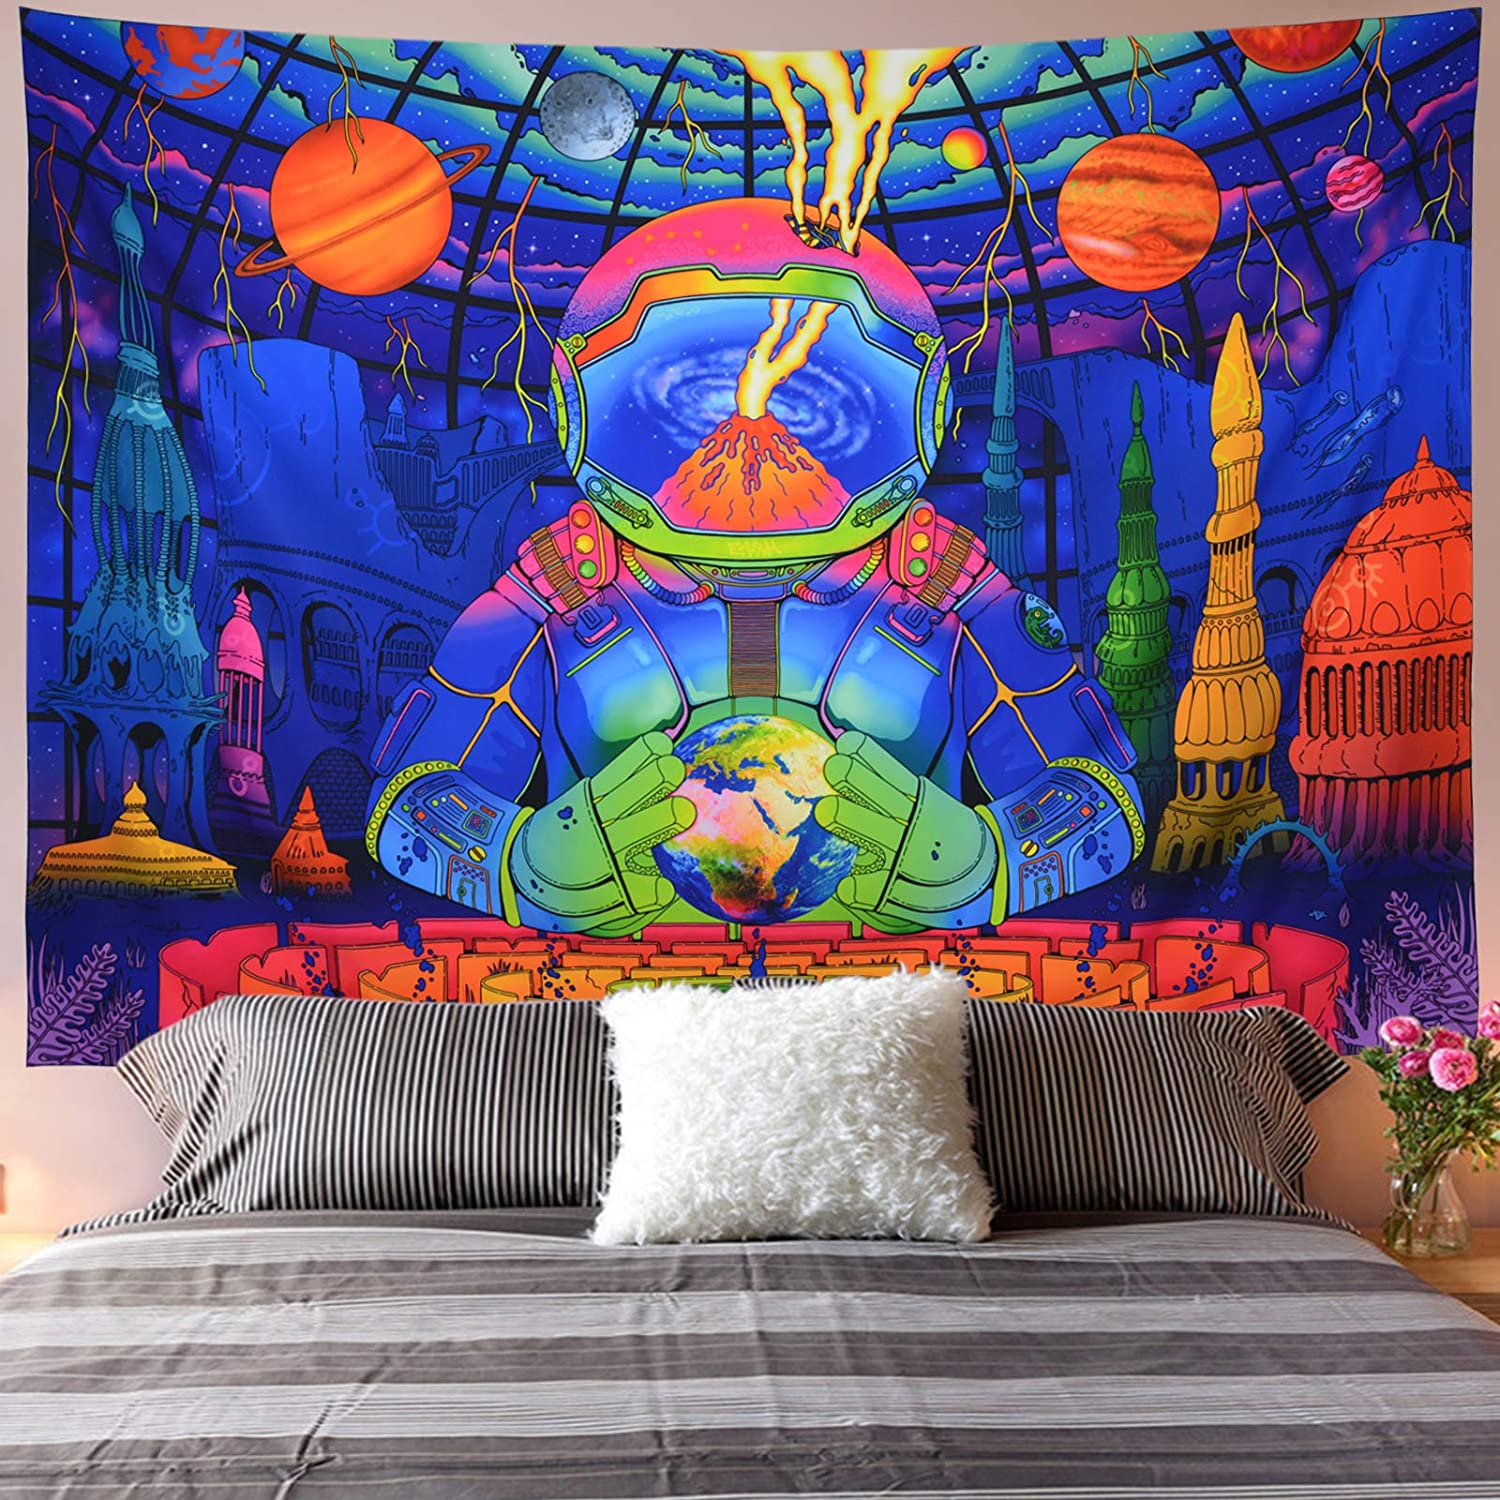 Max 69% OFF Galoker Industry No. 1 Trippy Astronaut and Tapestry Psy Galaxy Planet